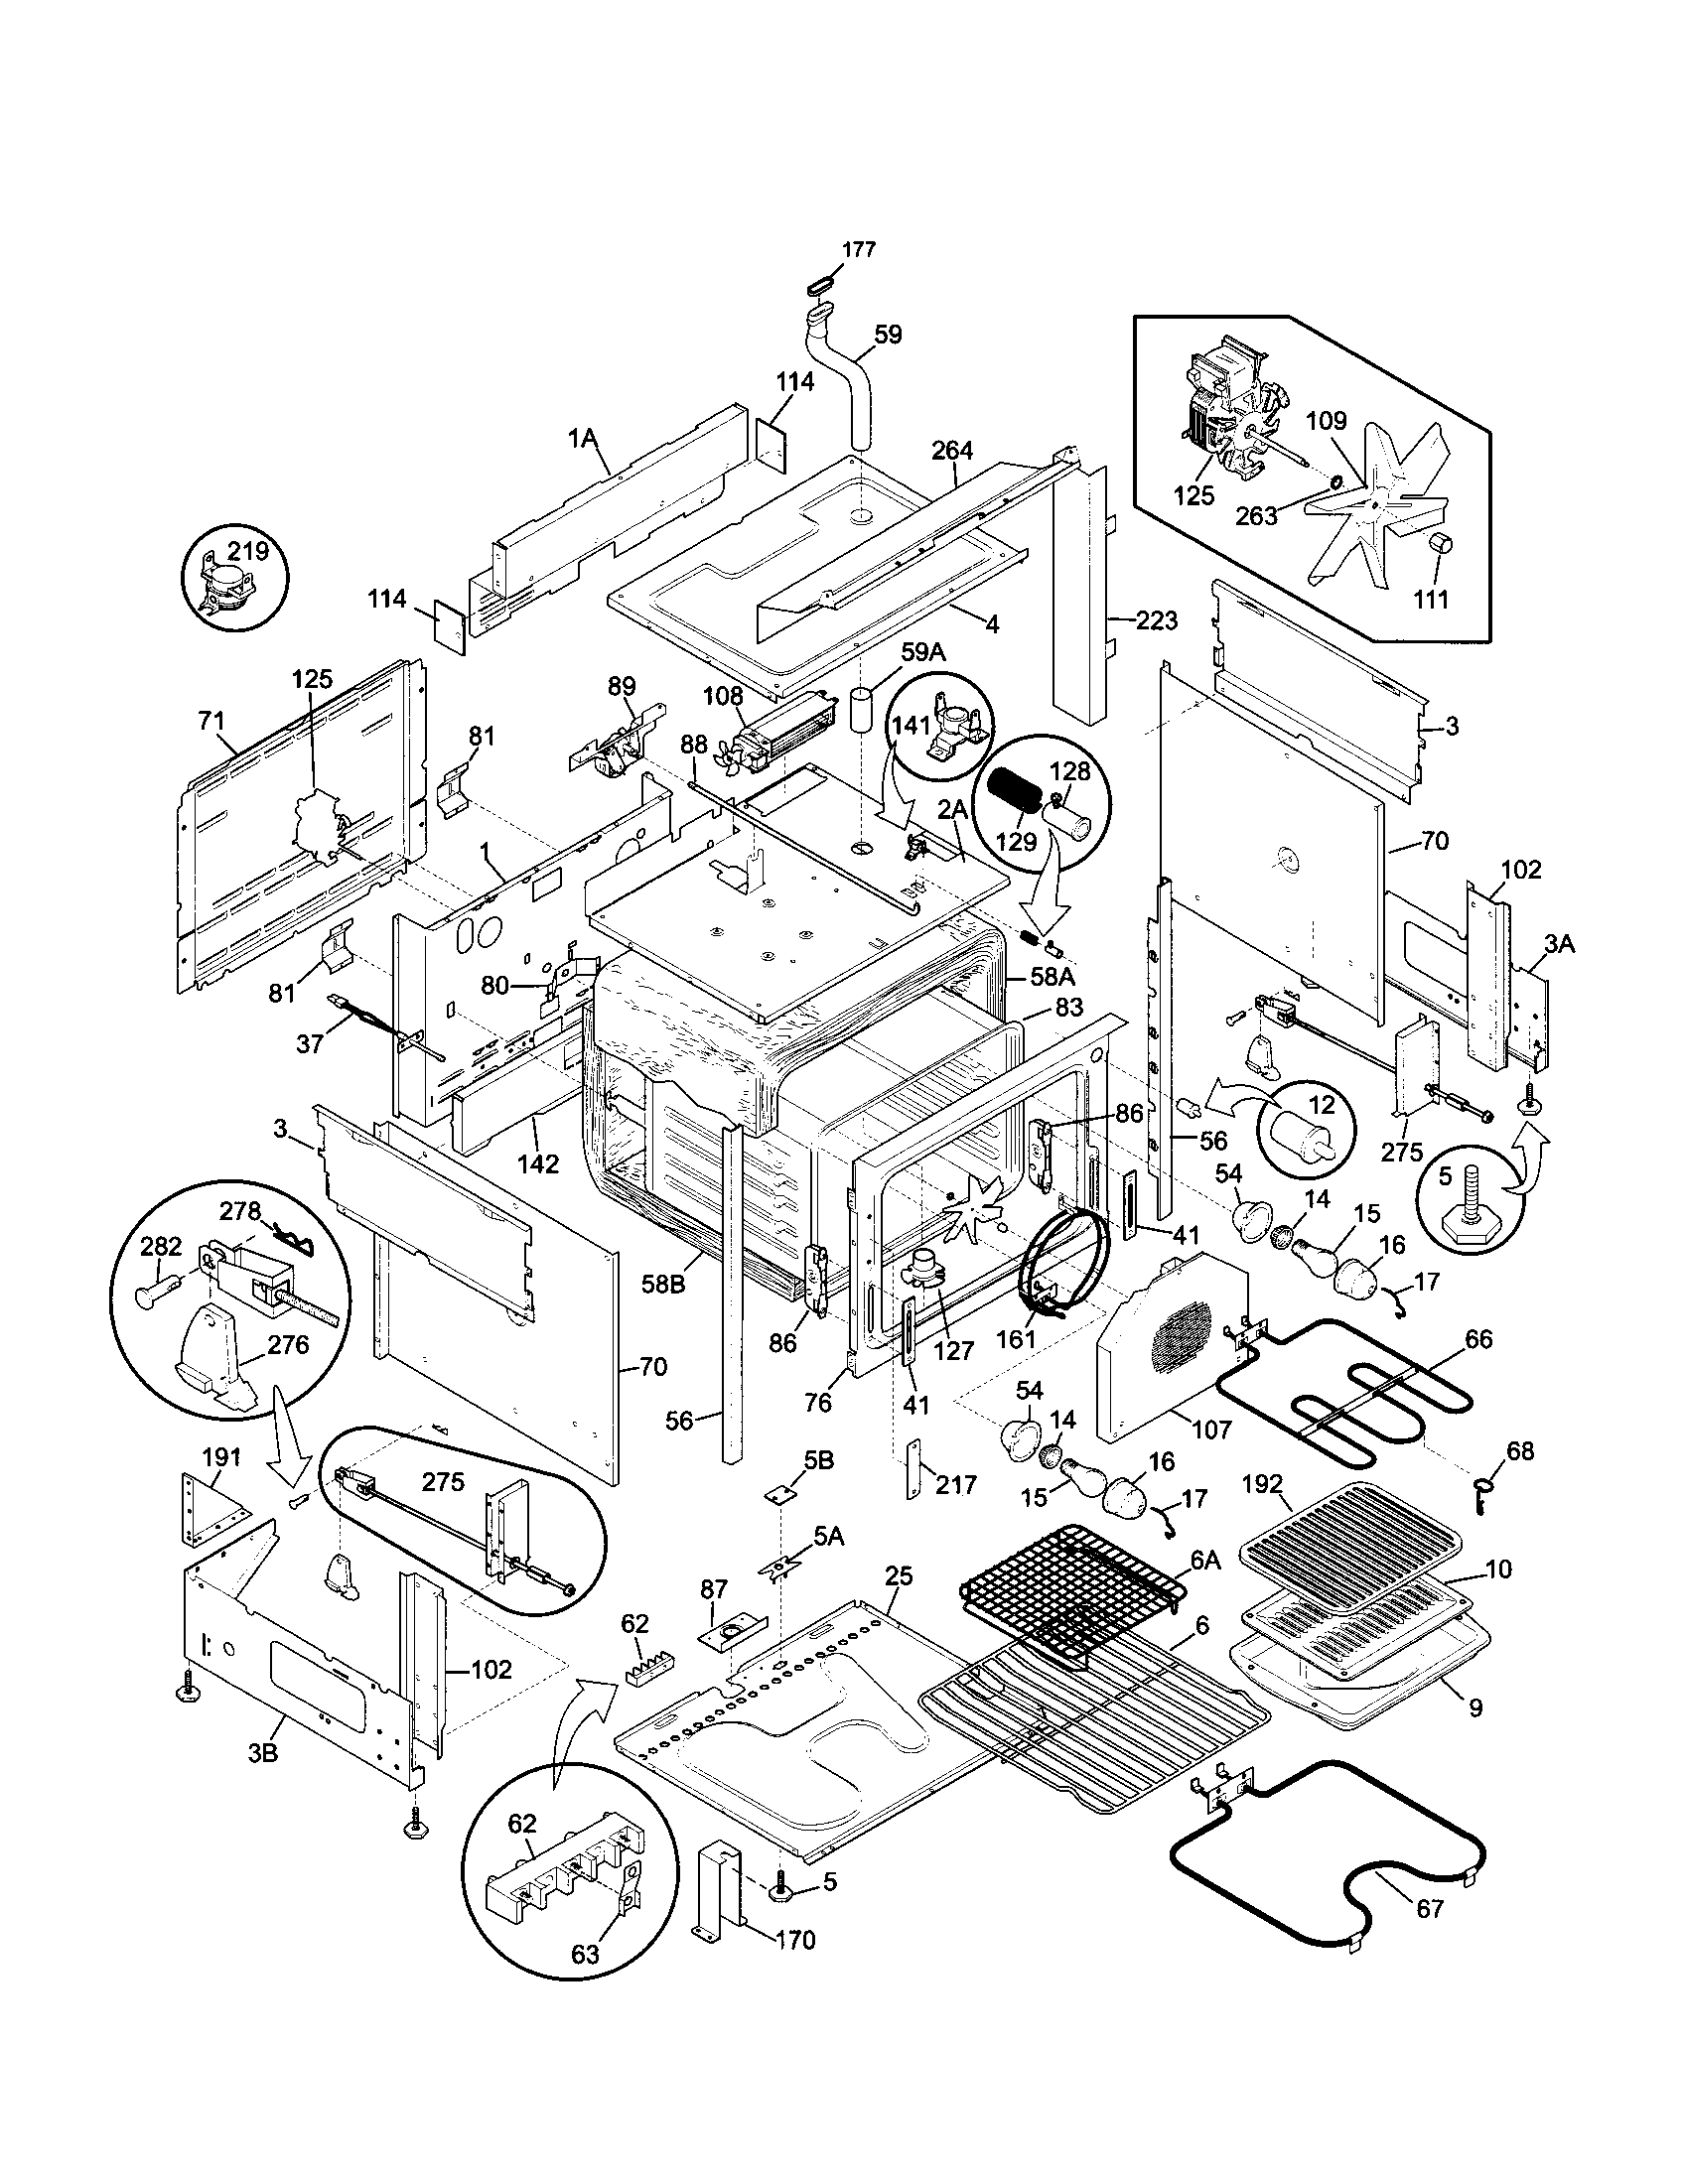 kenmore 79046813991 elite dual fuel slide in range timer stove Defrost Timer Wiring 79046813991 elite dual fuel slide in range body parts diagram